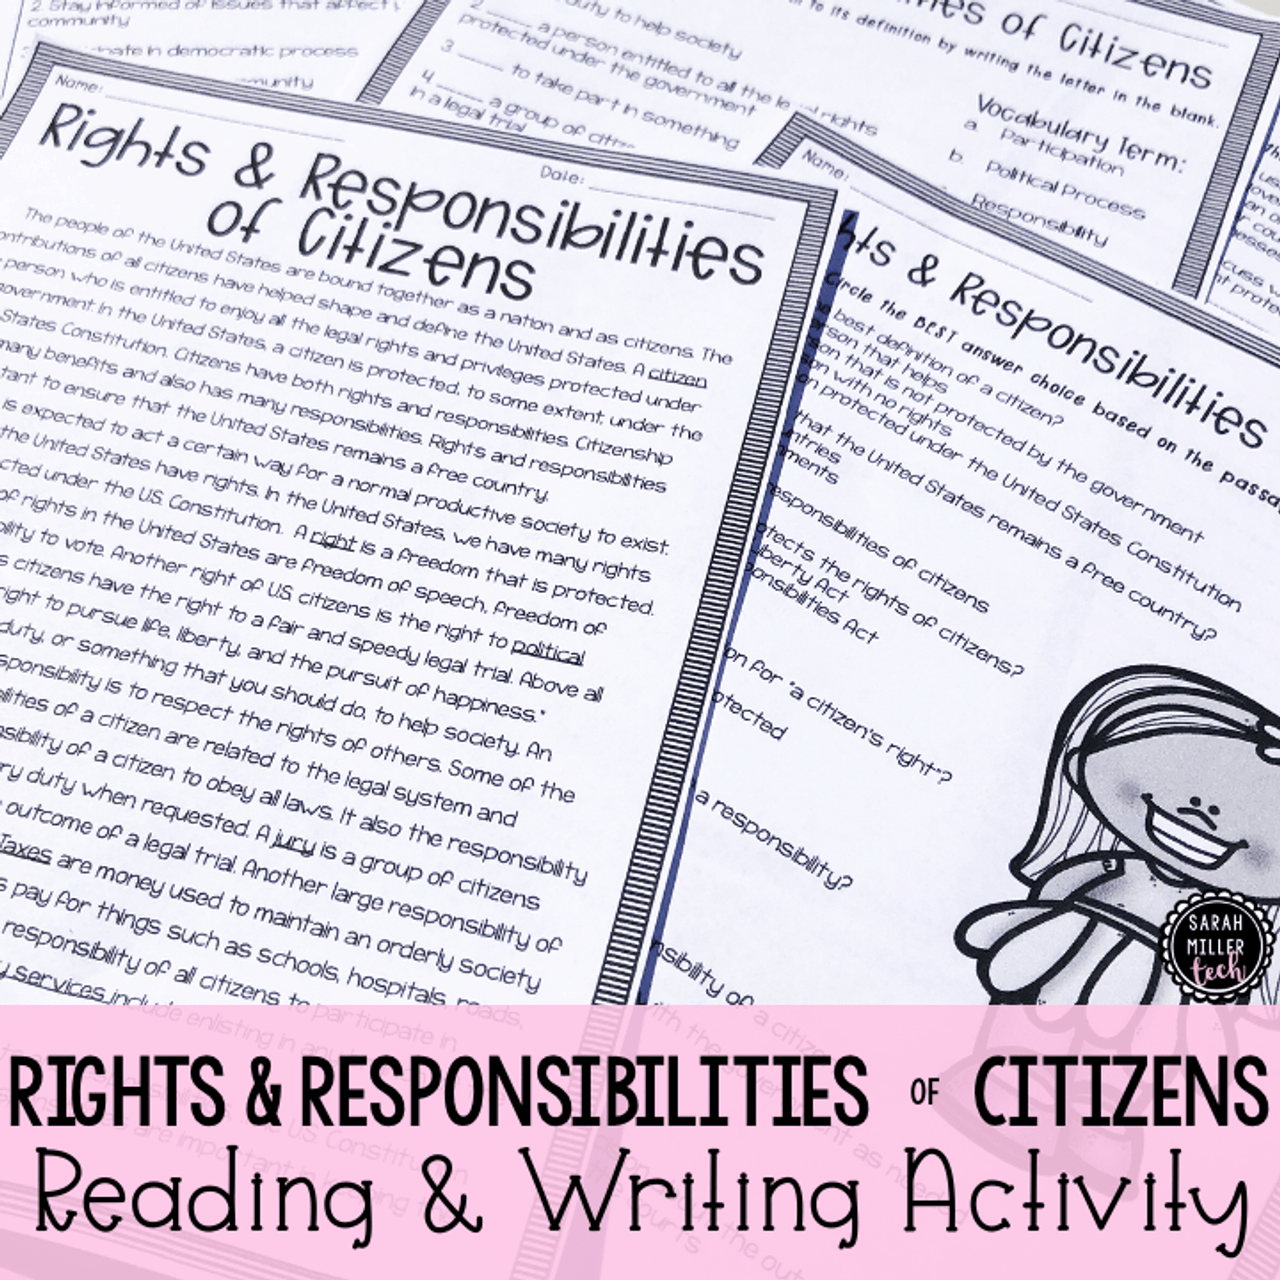 hight resolution of Citizens' Rights \u0026 Responsibilities Reading Activity (SS5CG1) - Amped Up  Learning